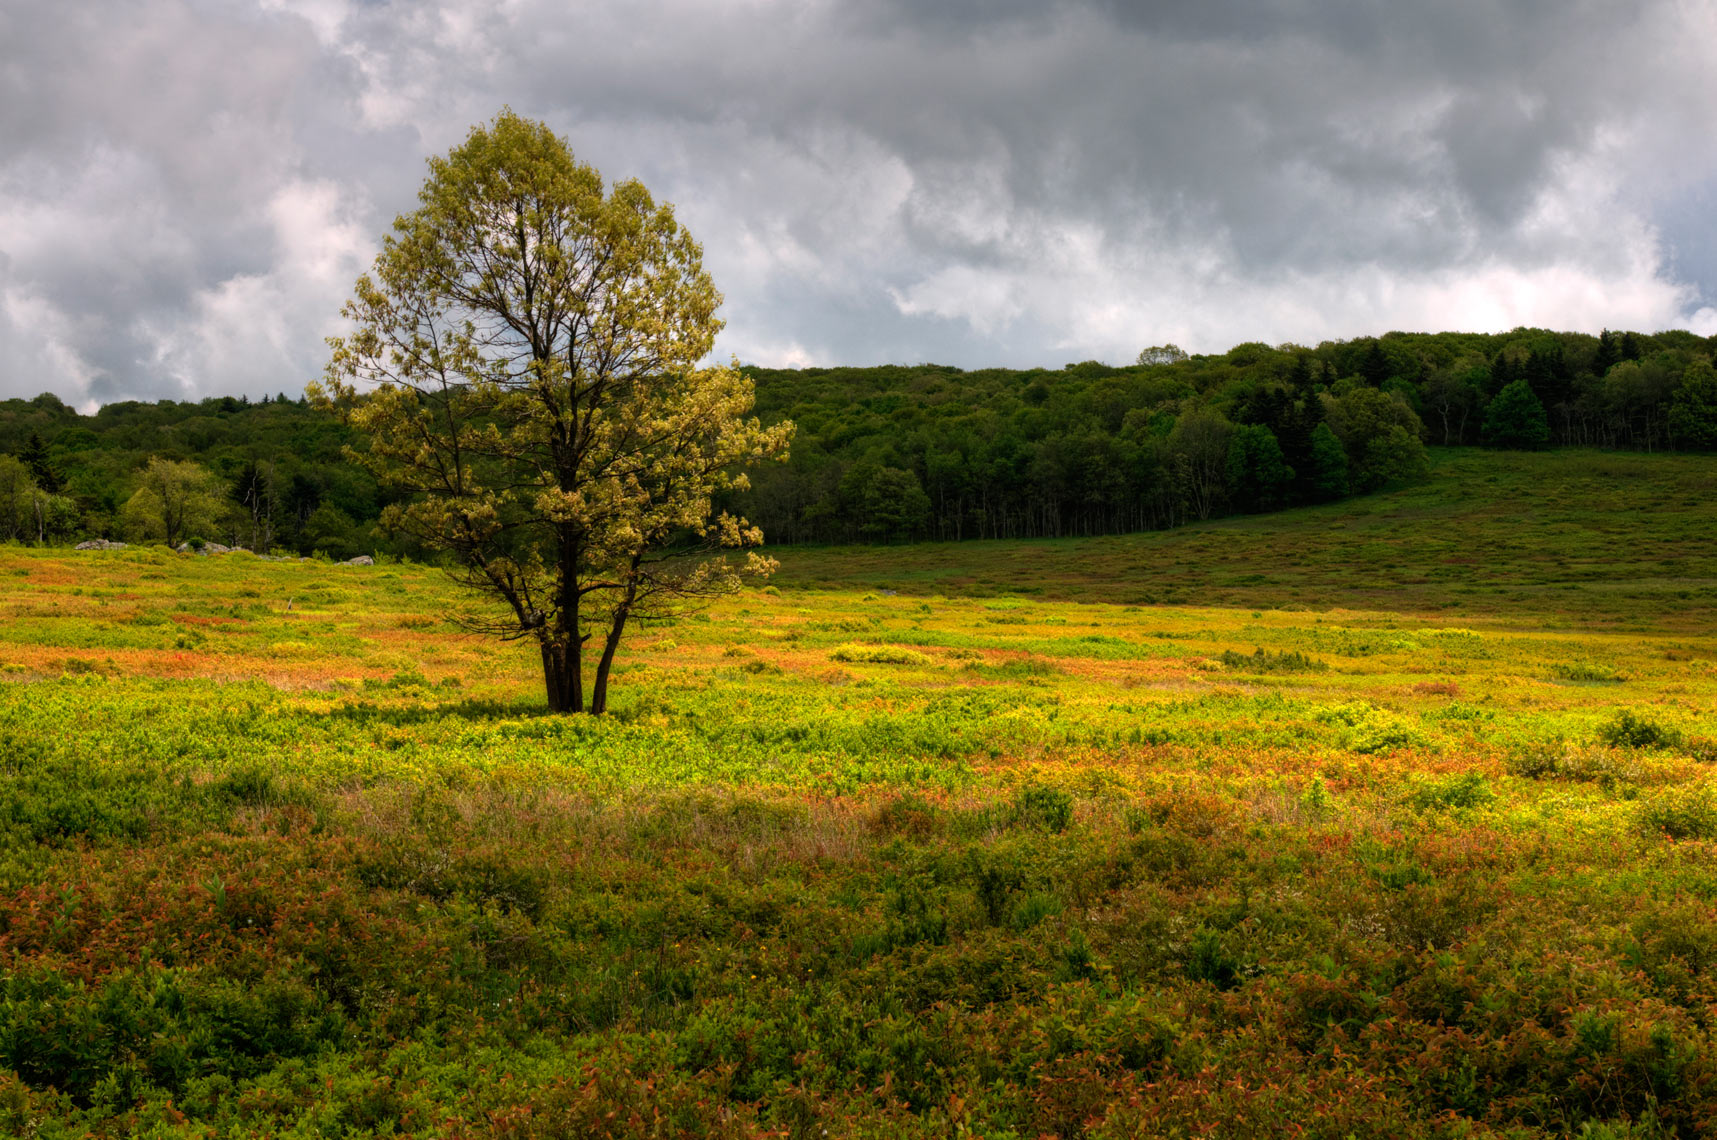 Lone tree in Big Meadow, Shenandoah National Park, Virginia